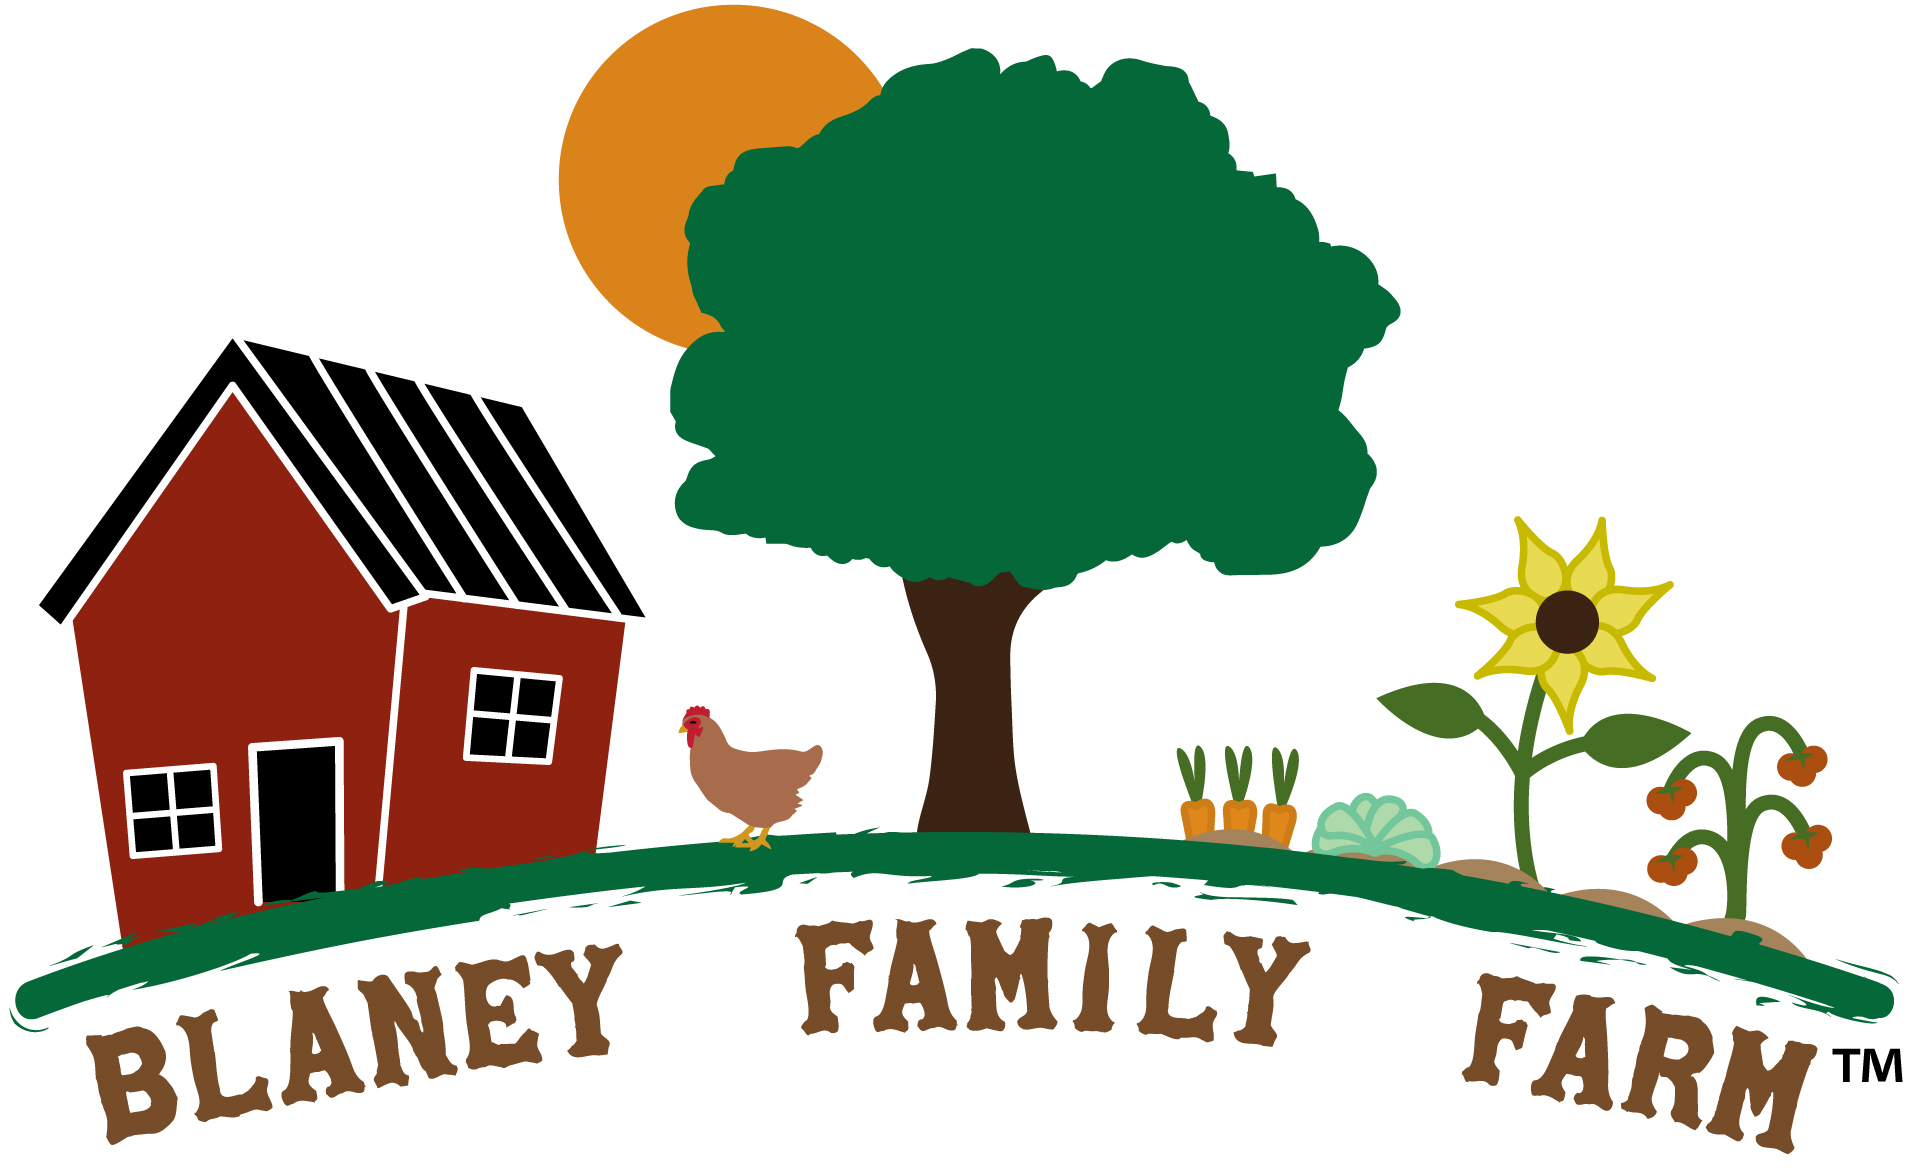 Blaney Family Farm